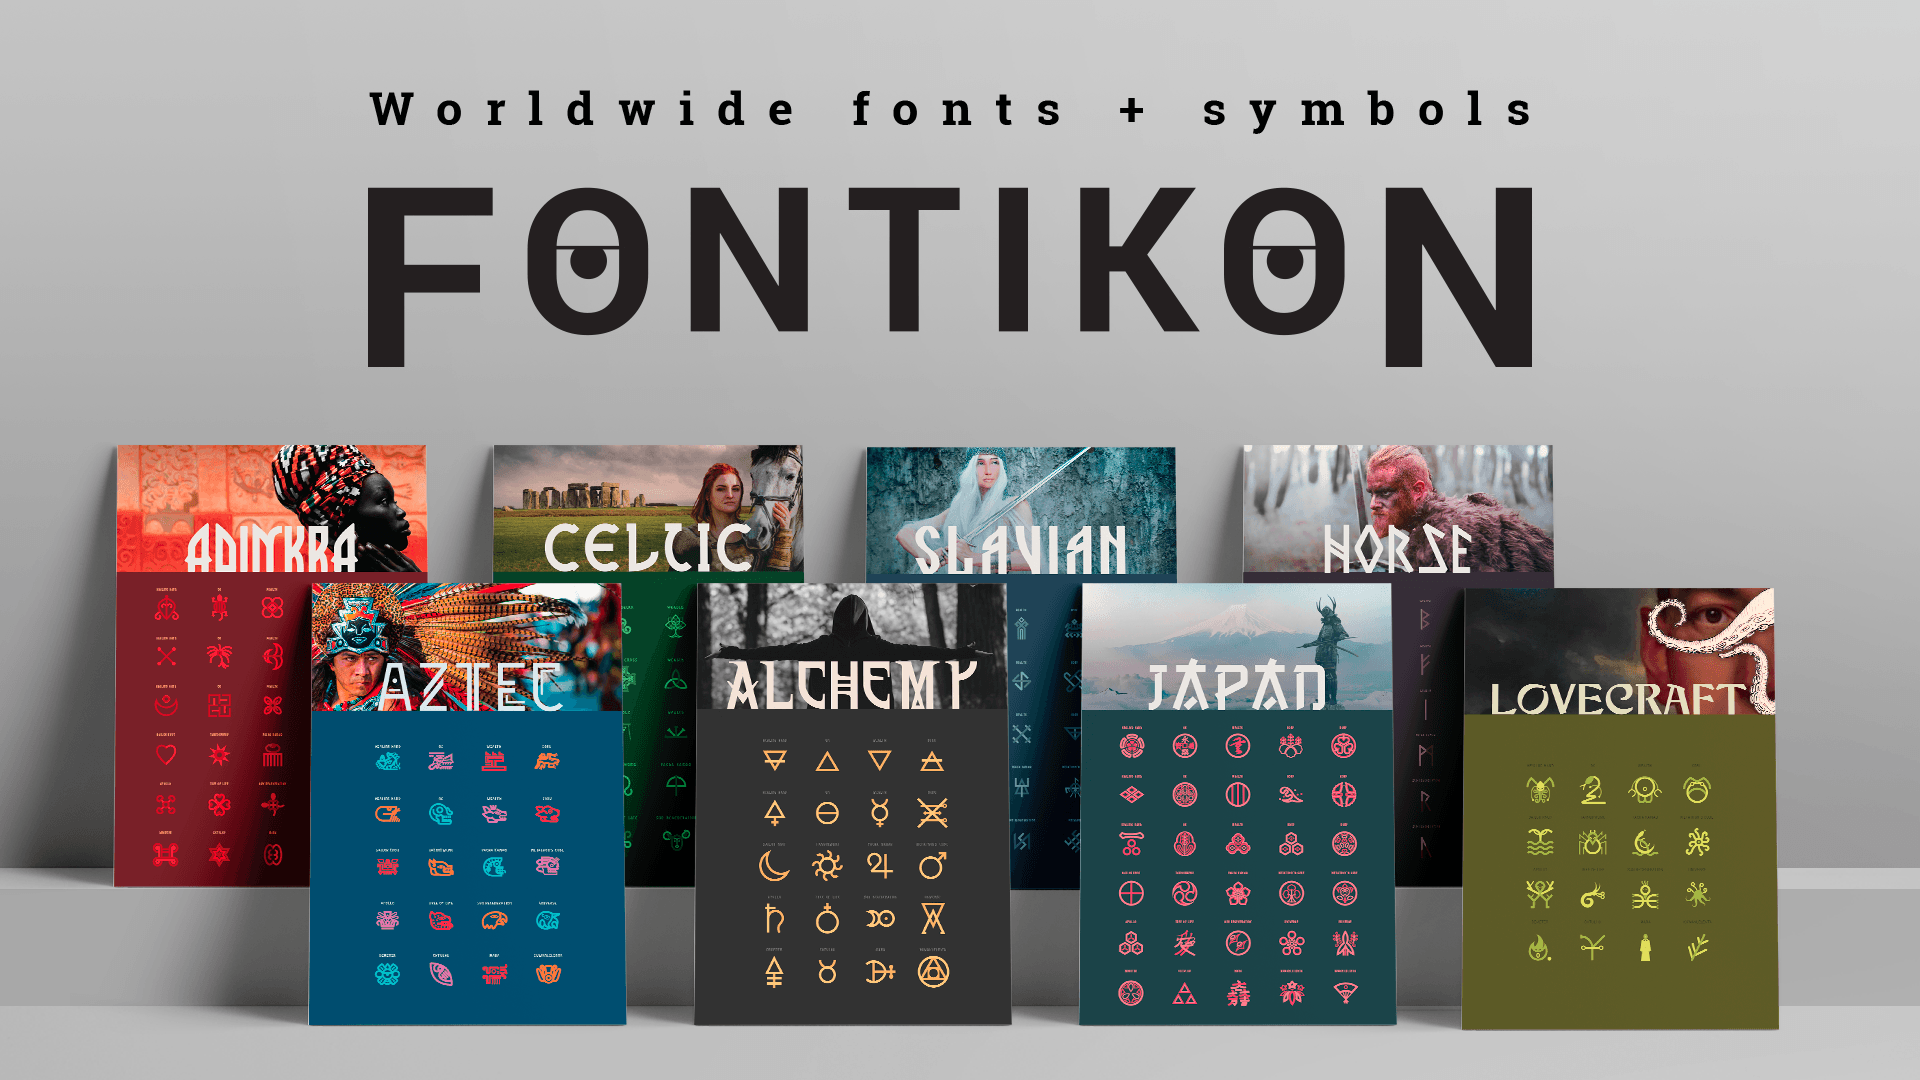 Fontikon is a collection of fonts and symbols inspired by ancient civilizations from around the world.